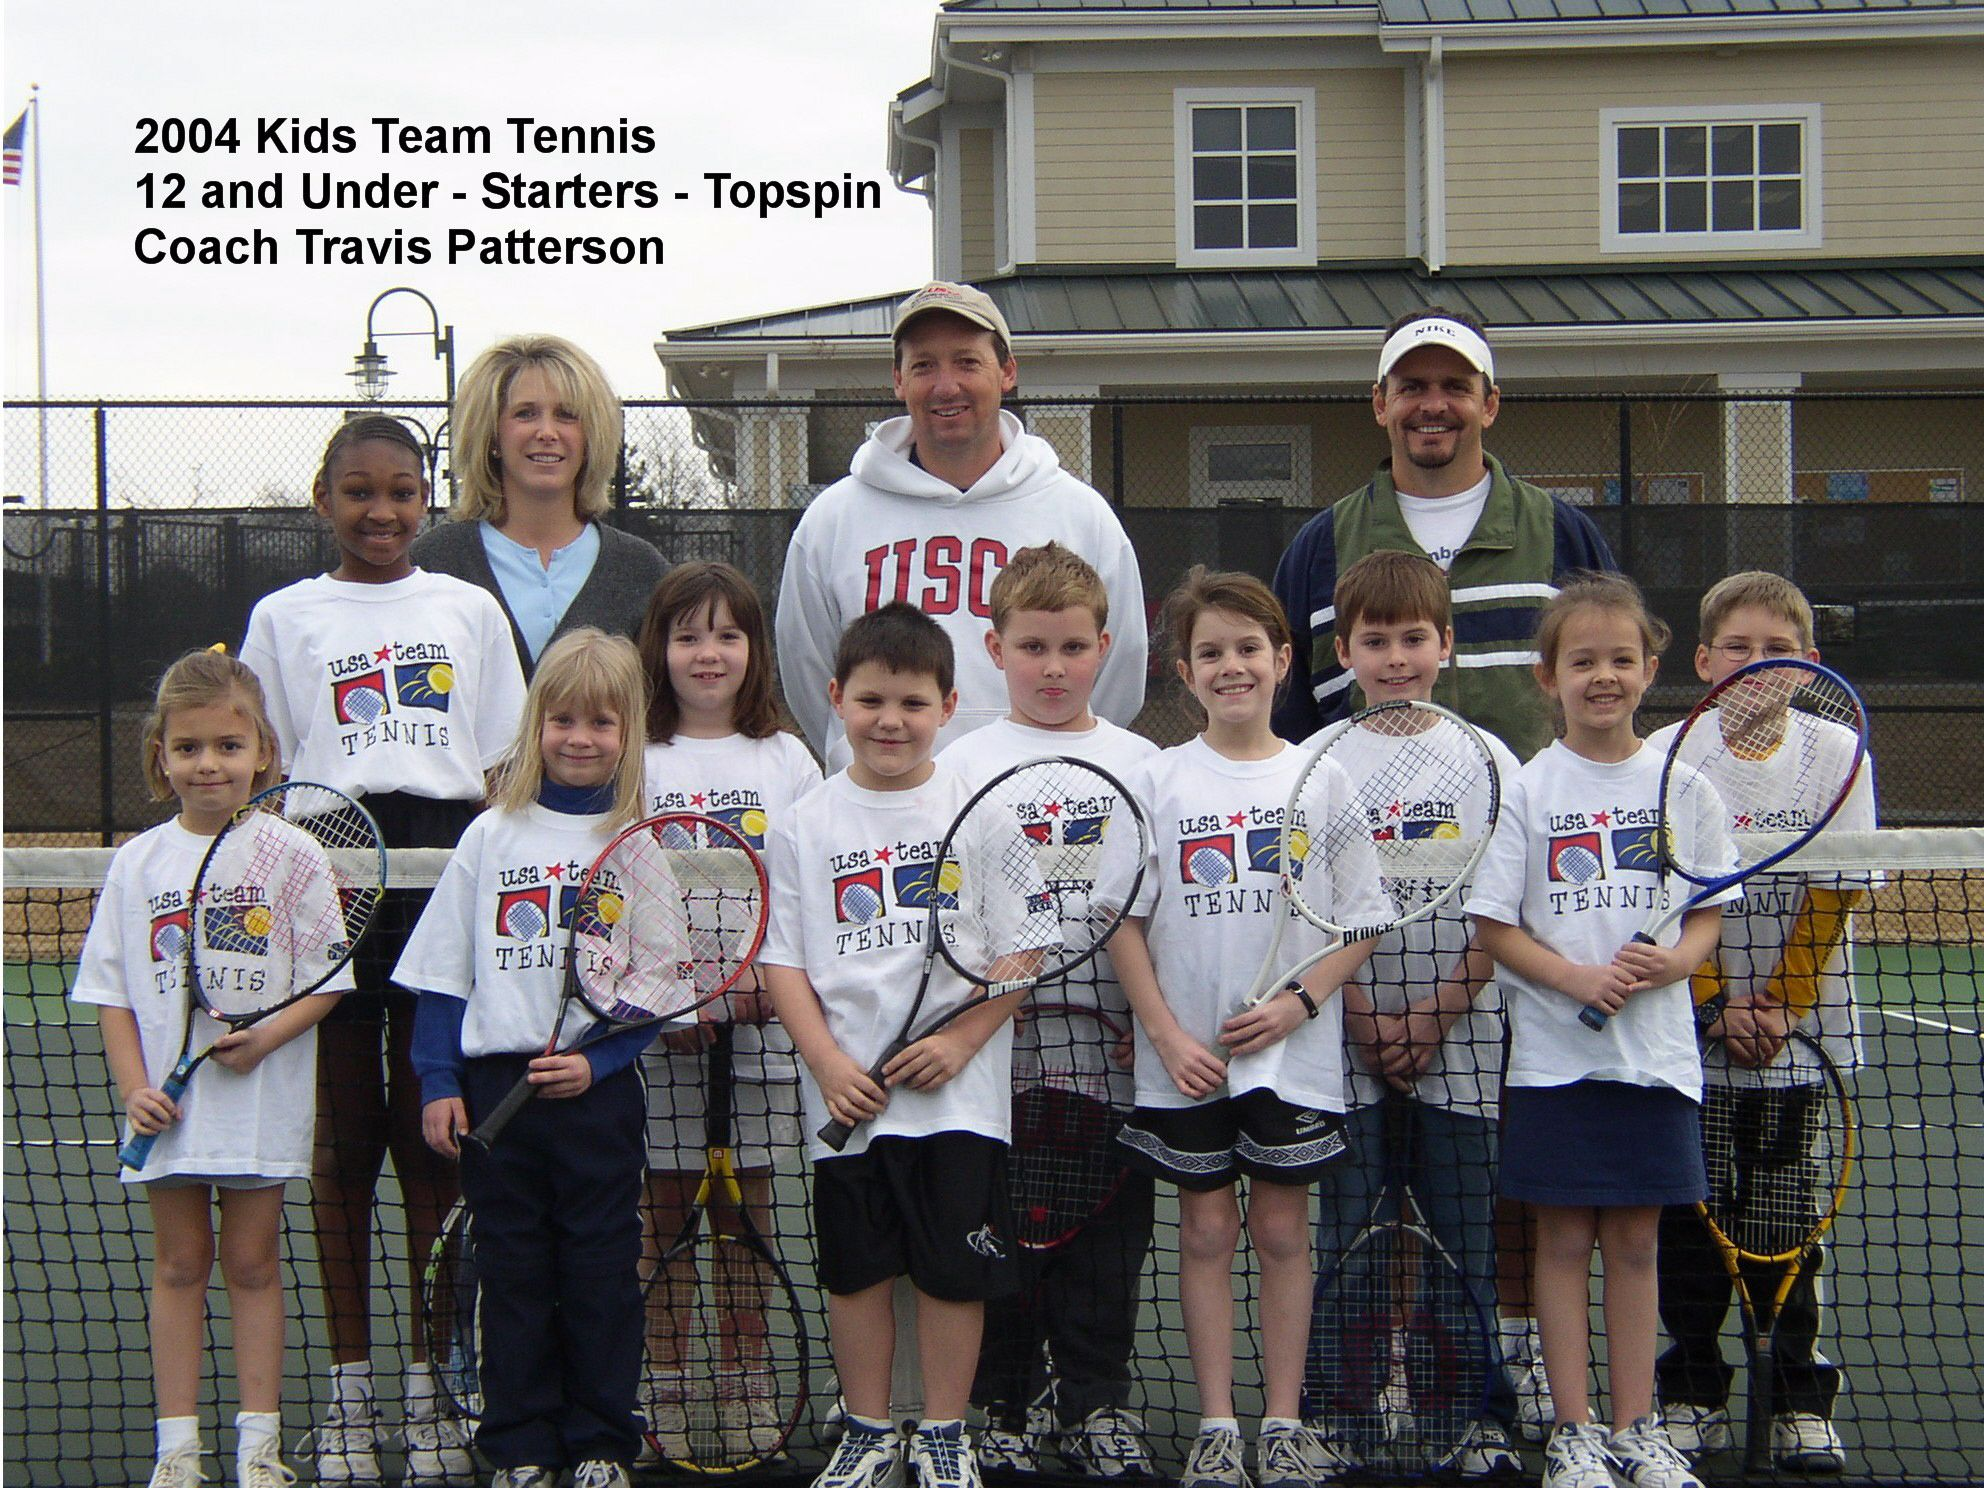 12 and Under - Starters - Coach Travis Patterson